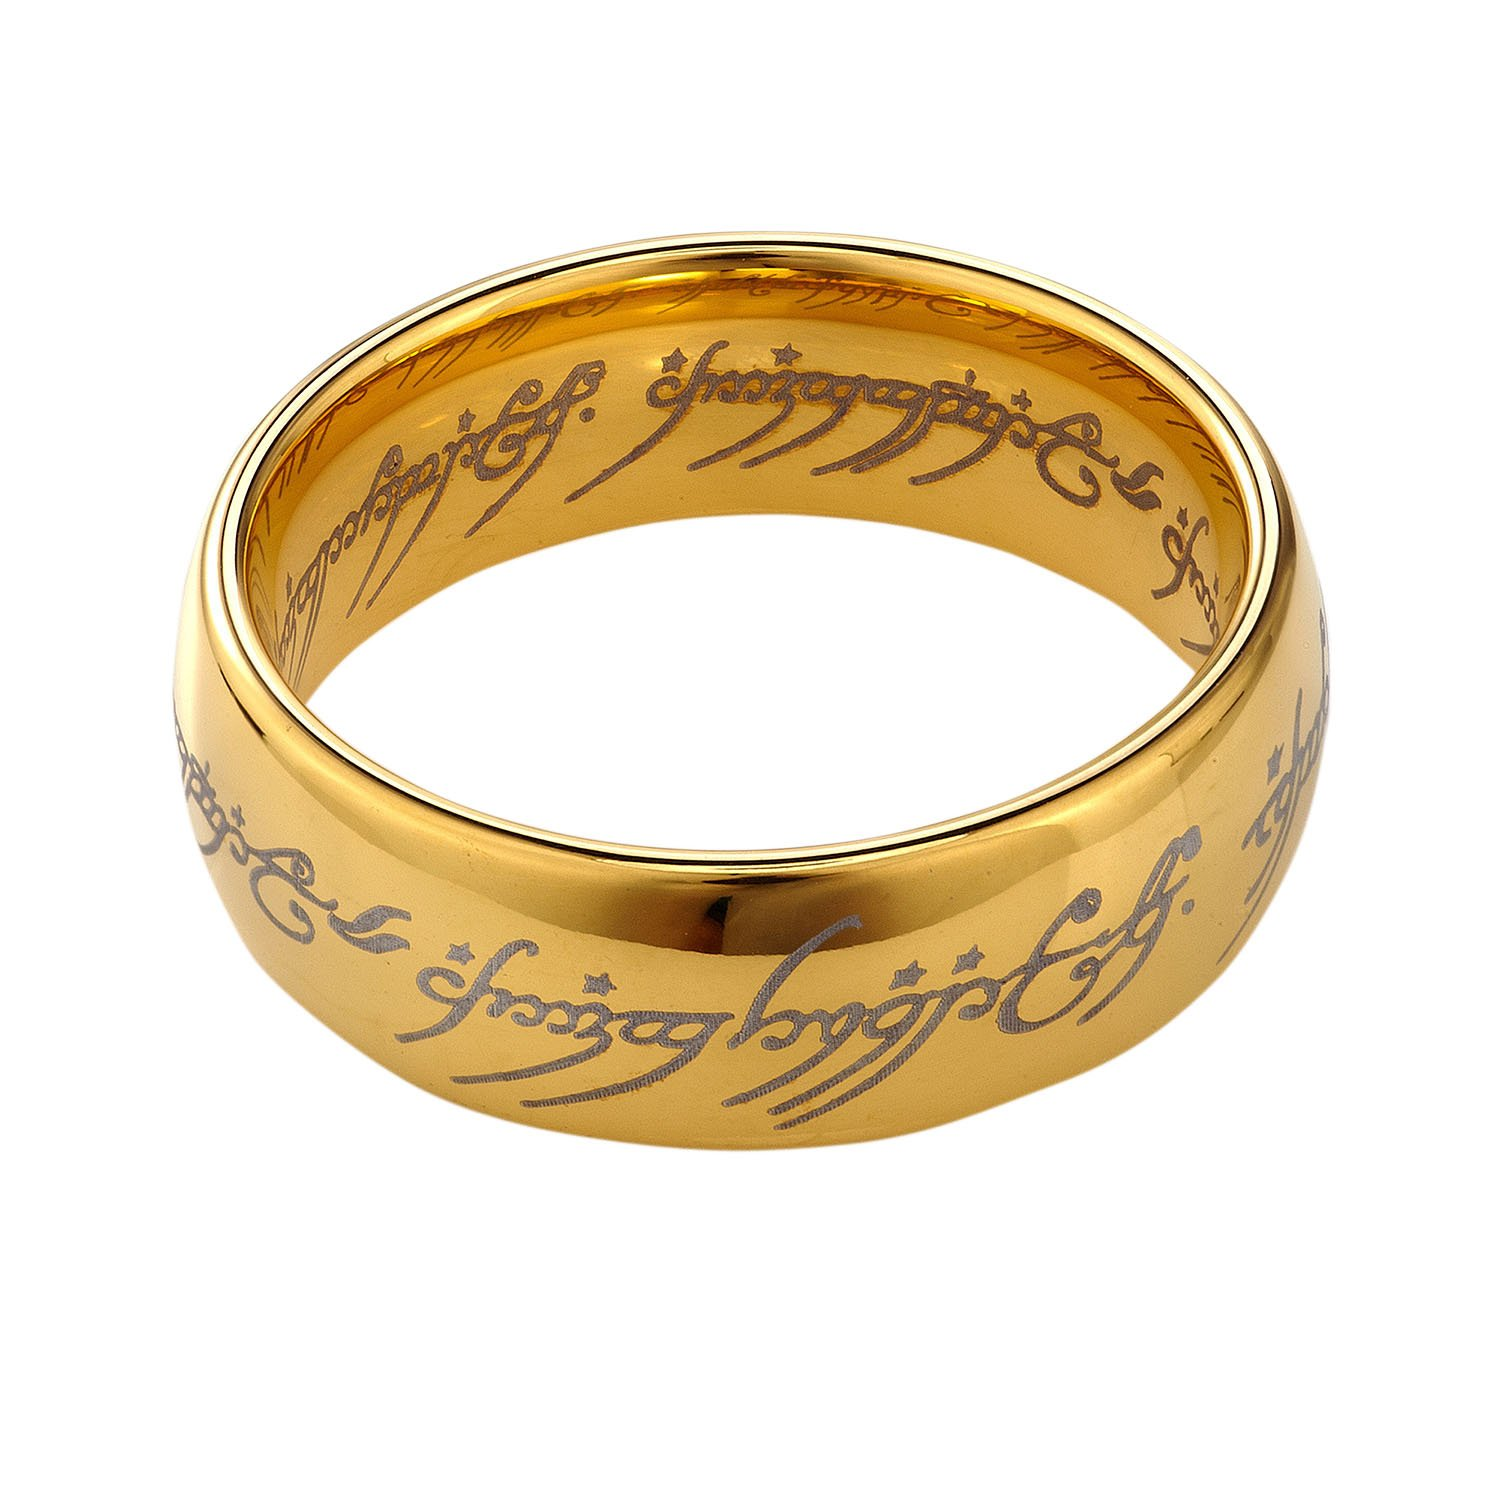 TUSEN JEWELRY Lord of the Rings Gold Color Tungsten Ring|Amazon.com